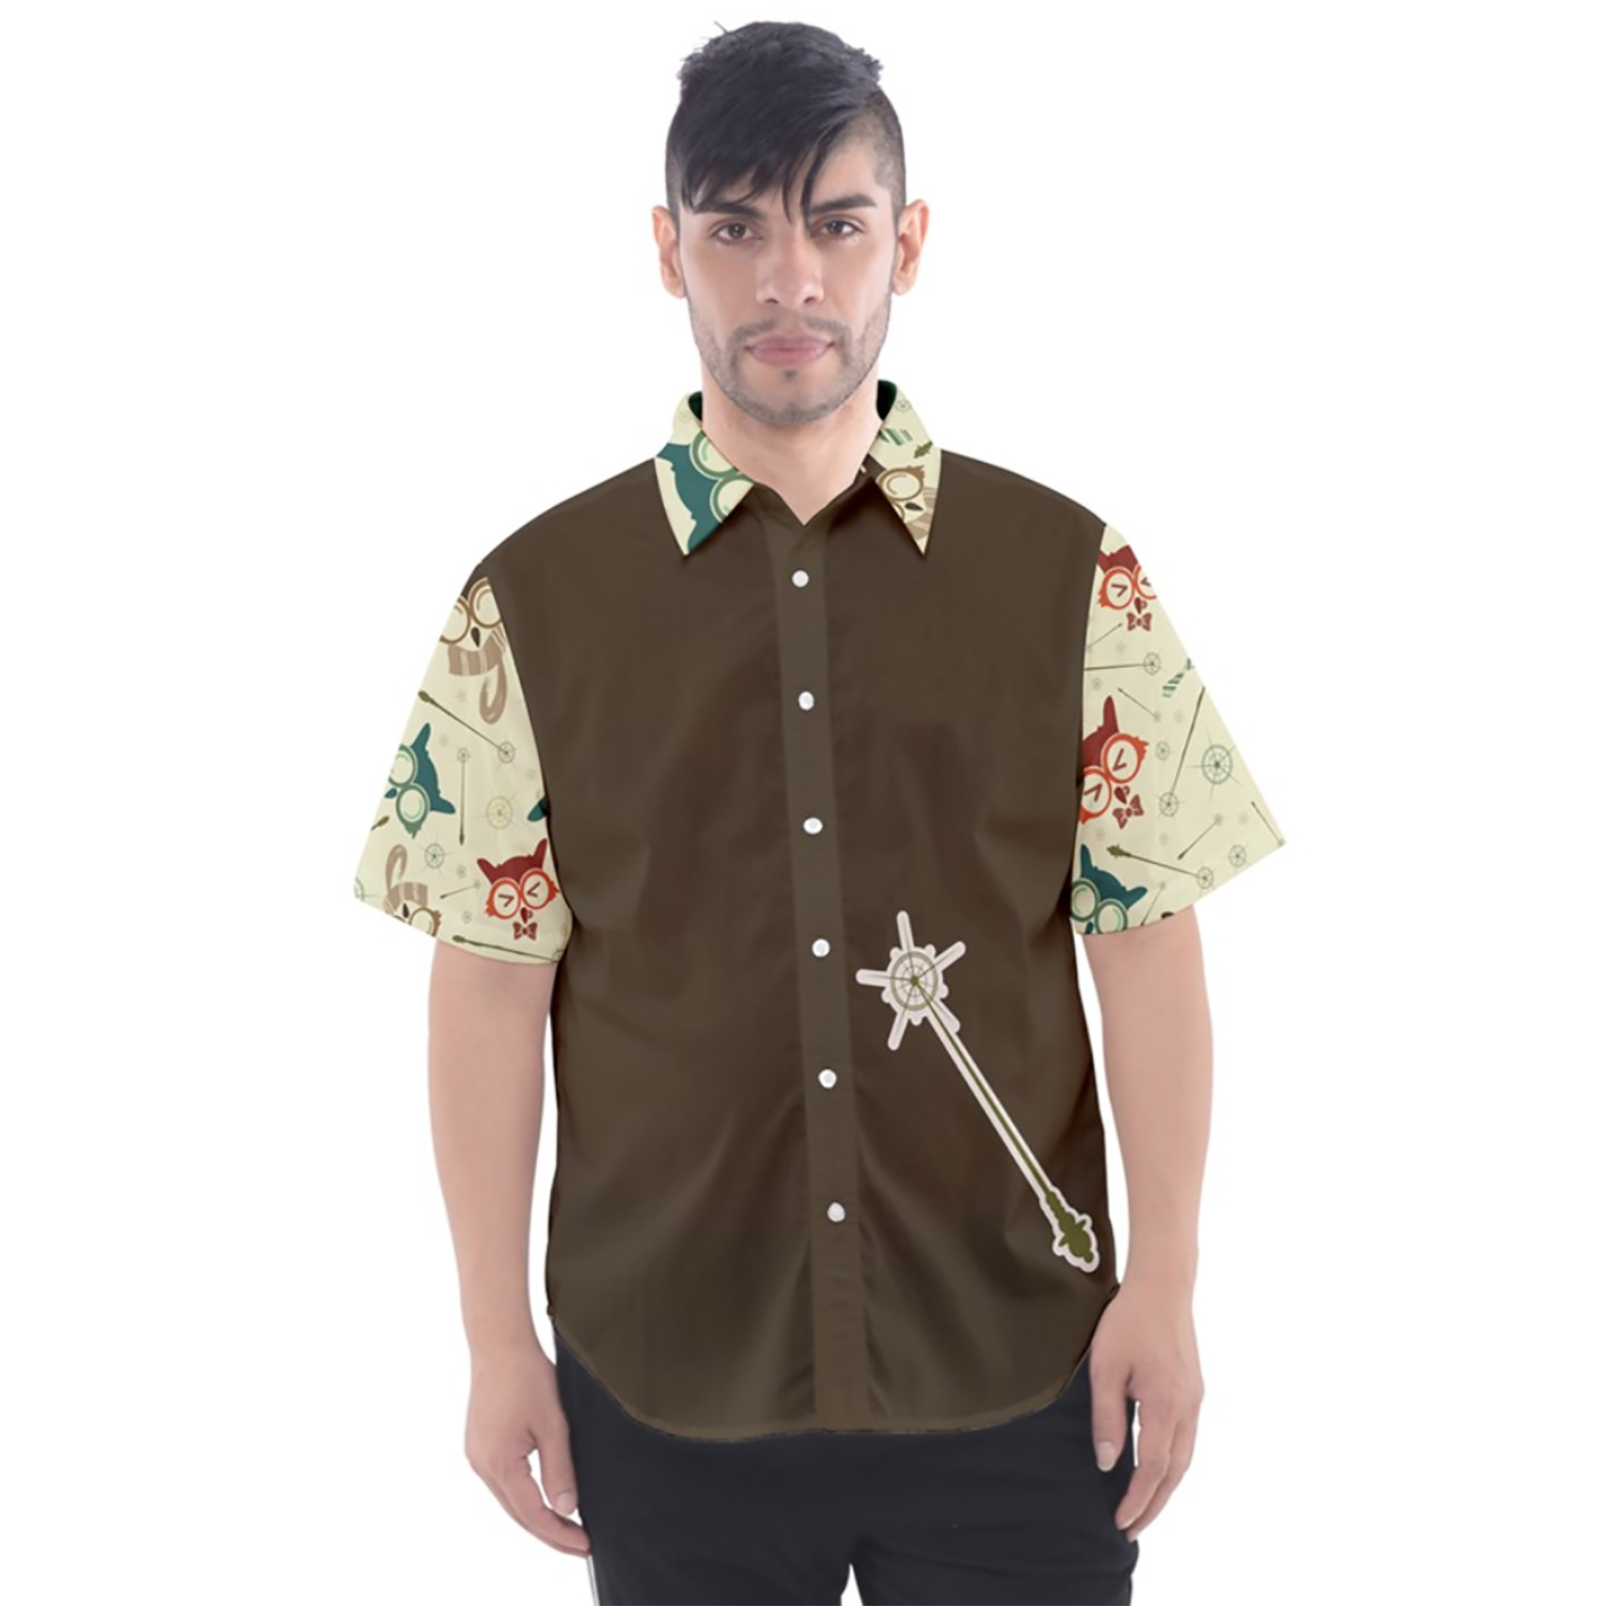 Vintage Emoji Owl Button Up Short Sleeve Shirt (Brown Solid Background)